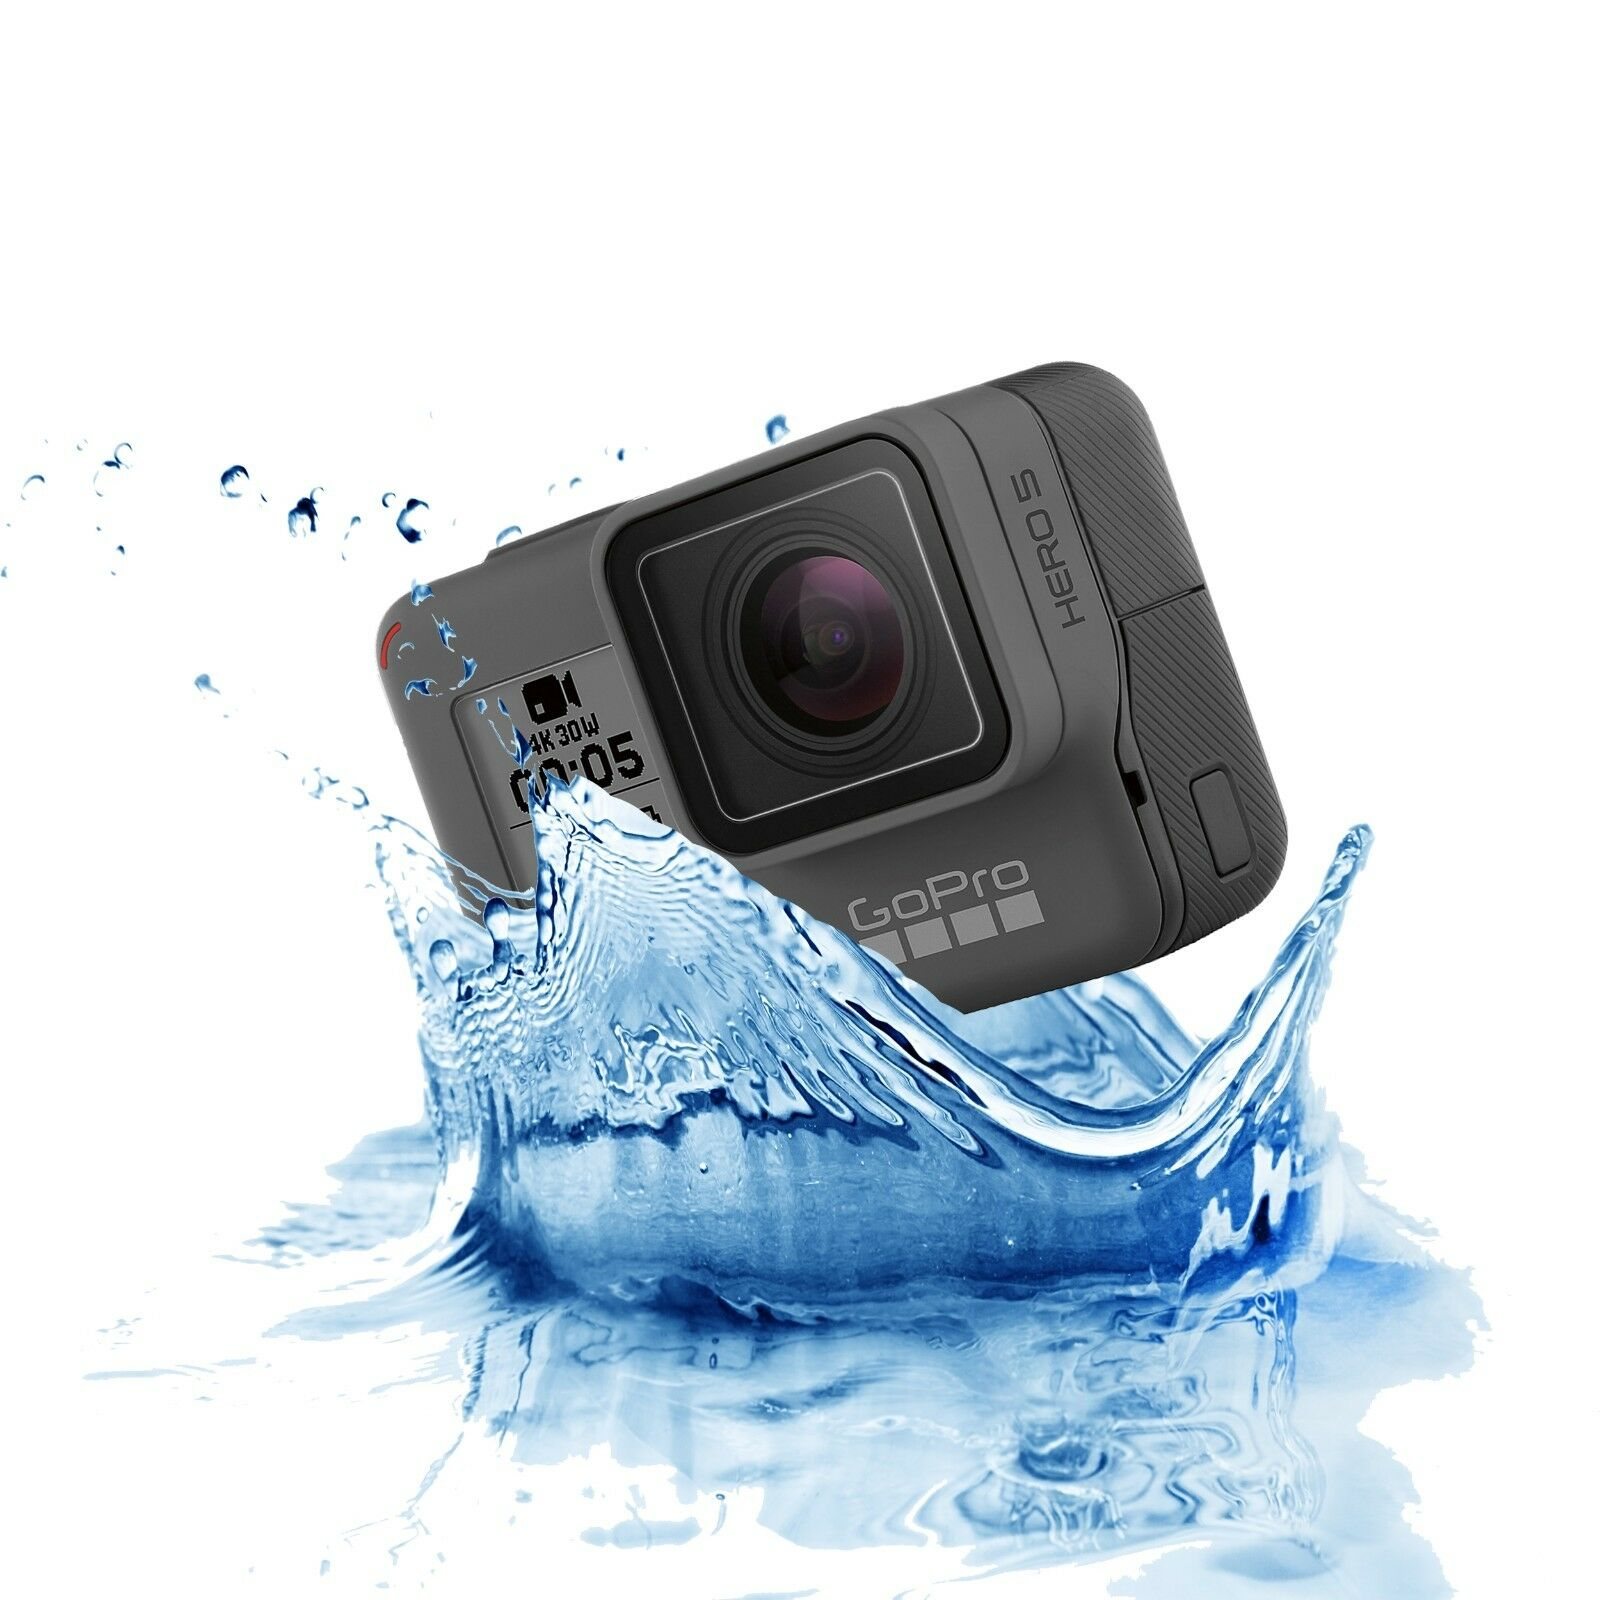 NEW GoPro Hero 5 Black 4K 12MP Action Camera Kit Waterproof Touch Display GPS Featured